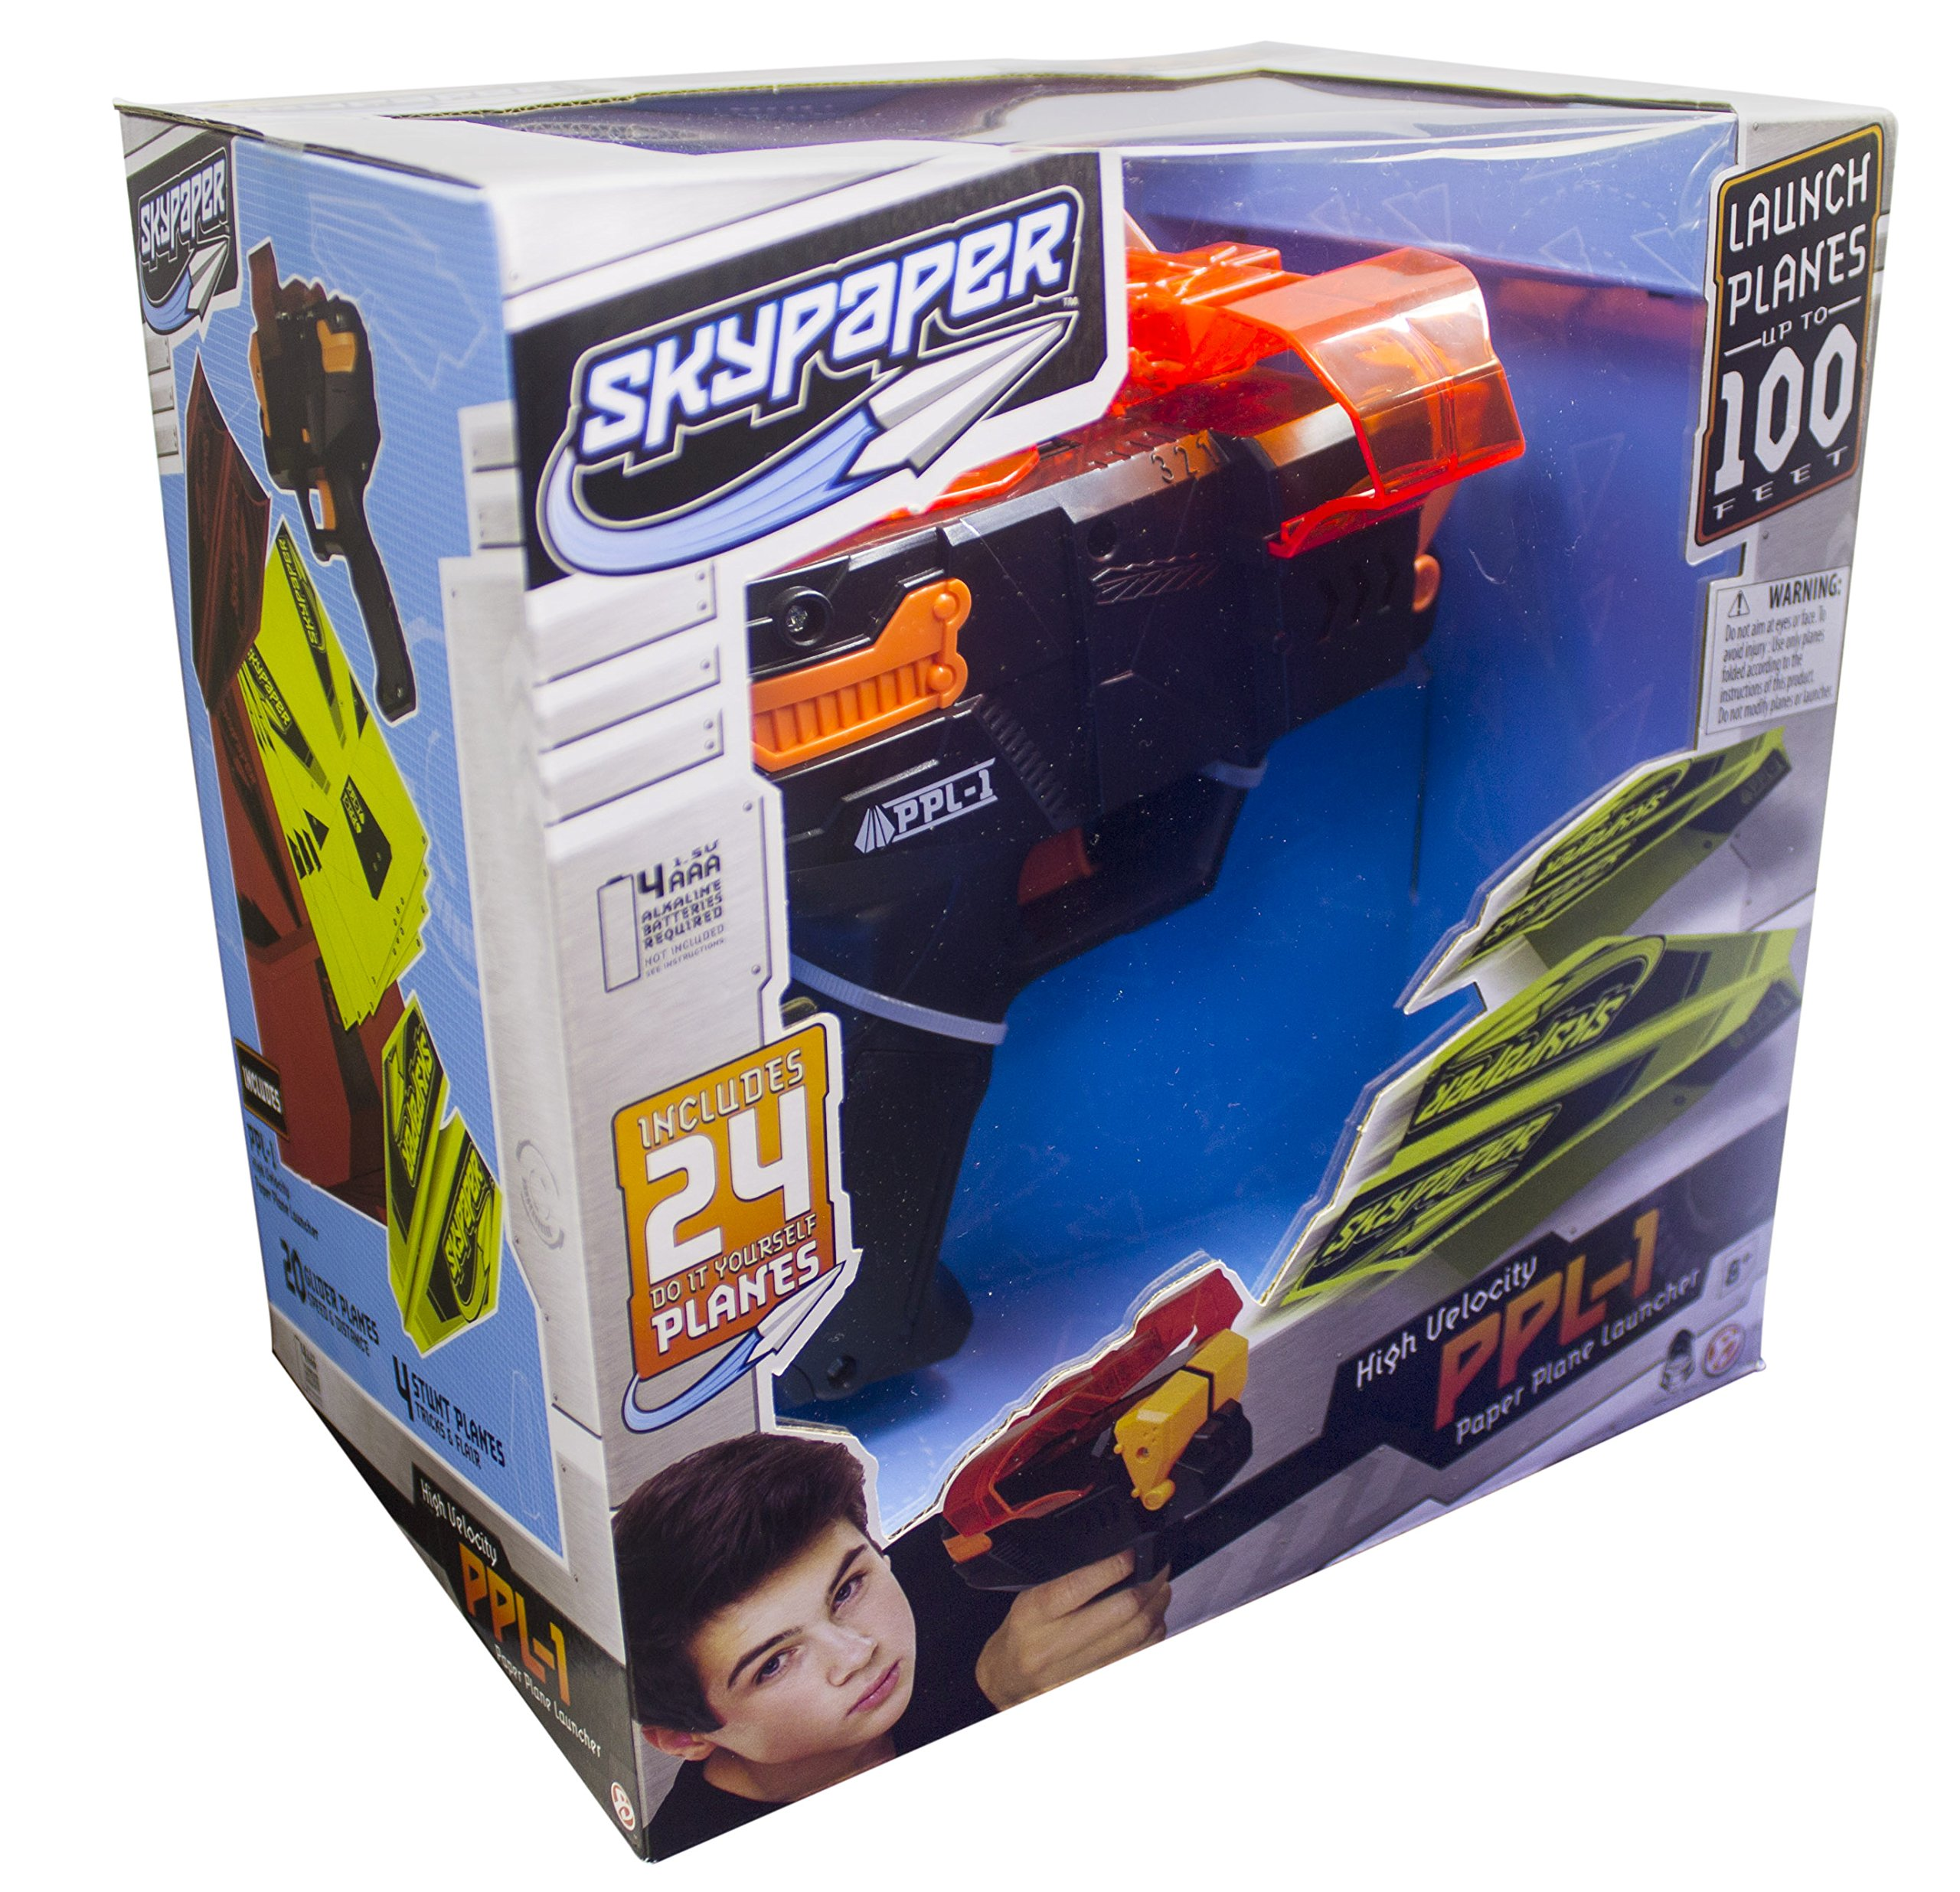 SkyPaper Paper Plane Launcher - Stealth Black by The Bridge Direct (Image #2)